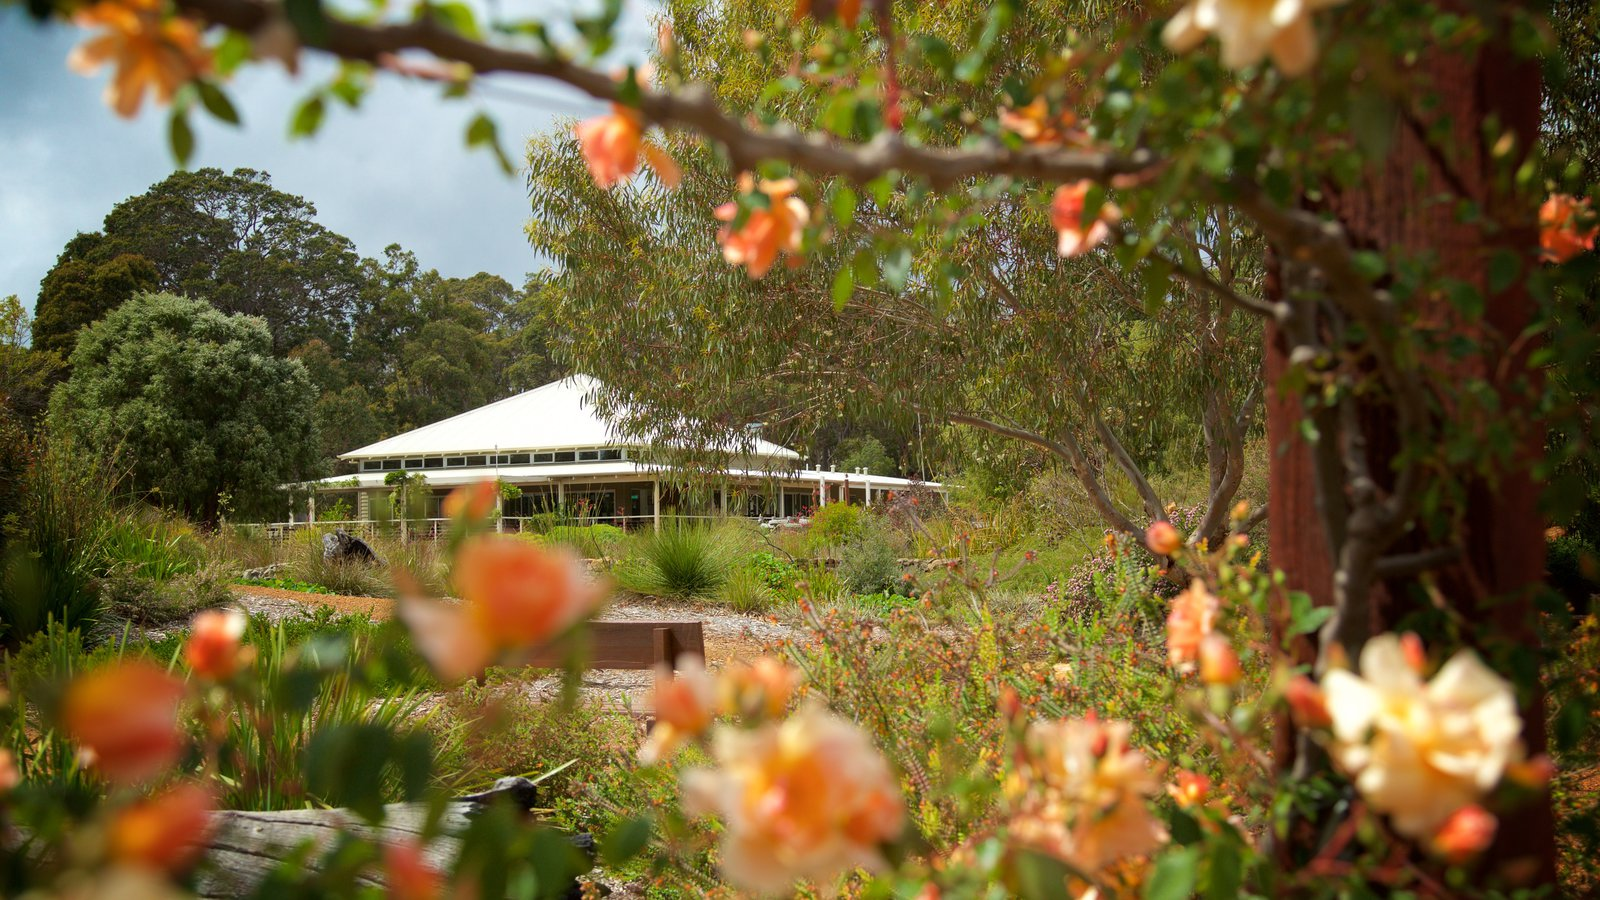 Gardens & Parks Pictures: View Images of Amaze\'n Margaret River